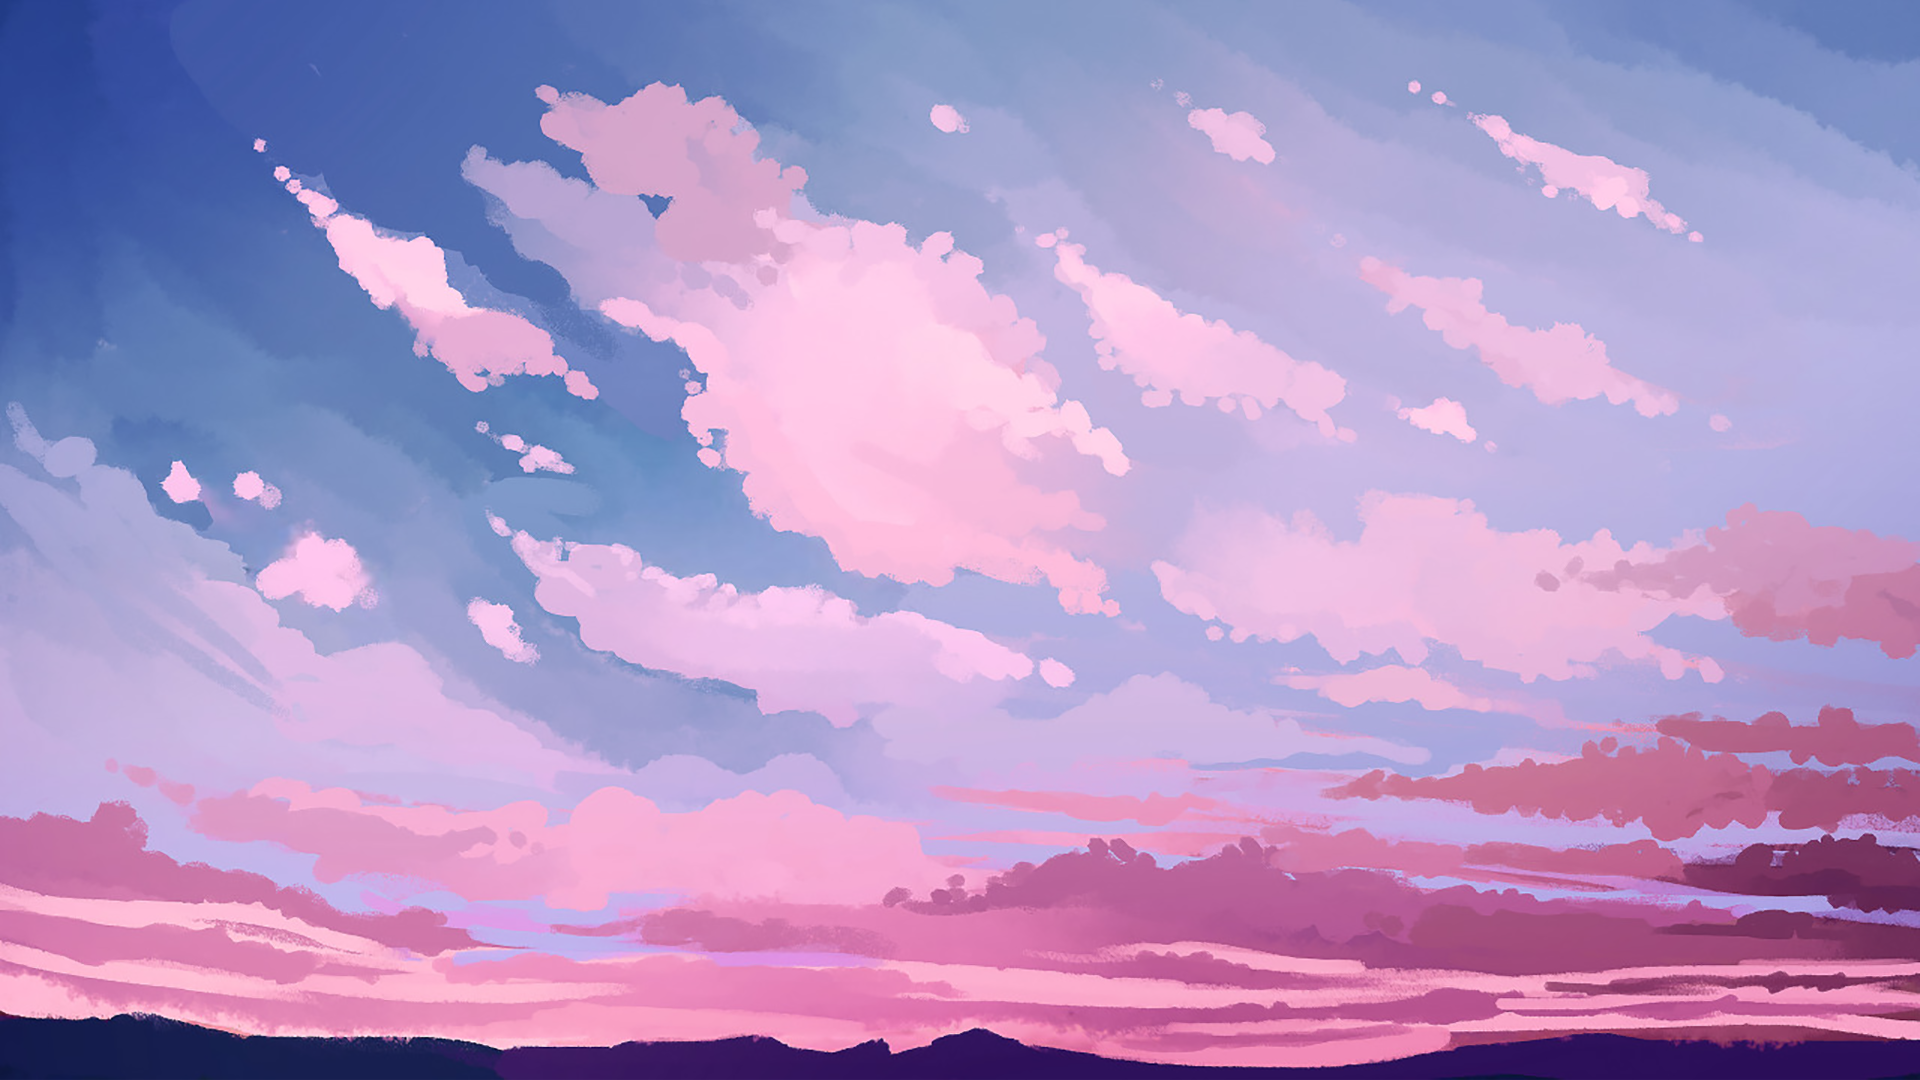 Aesthetic Sky Desktop Wallpapers Top Free Aesthetic Sky Desktop